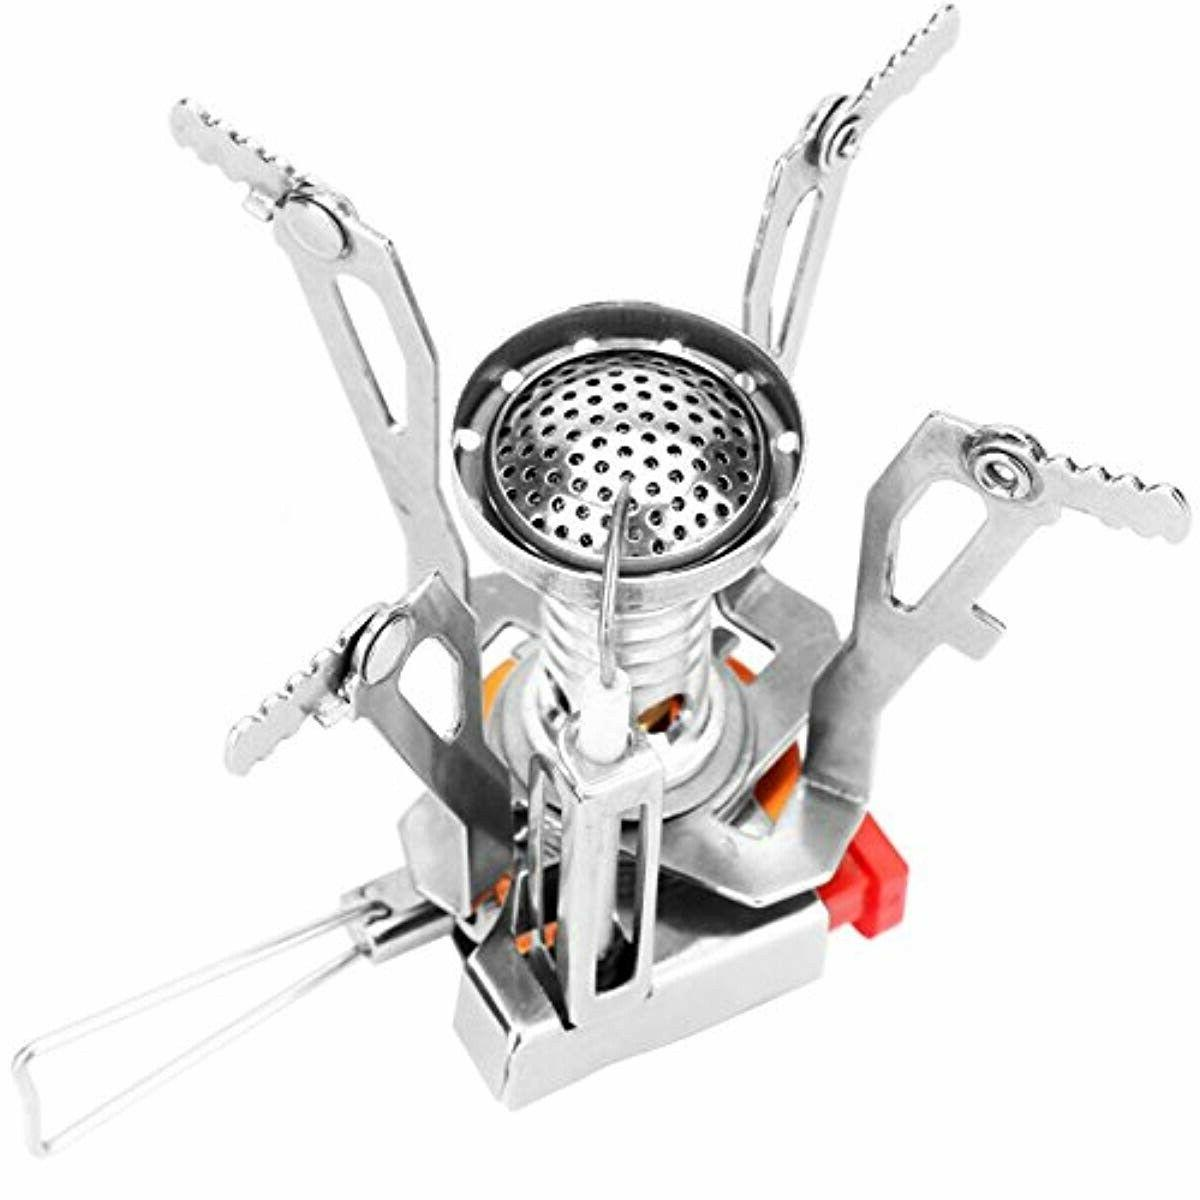 REEHUT Ultralight Camping Stoves Backpacking Stove with